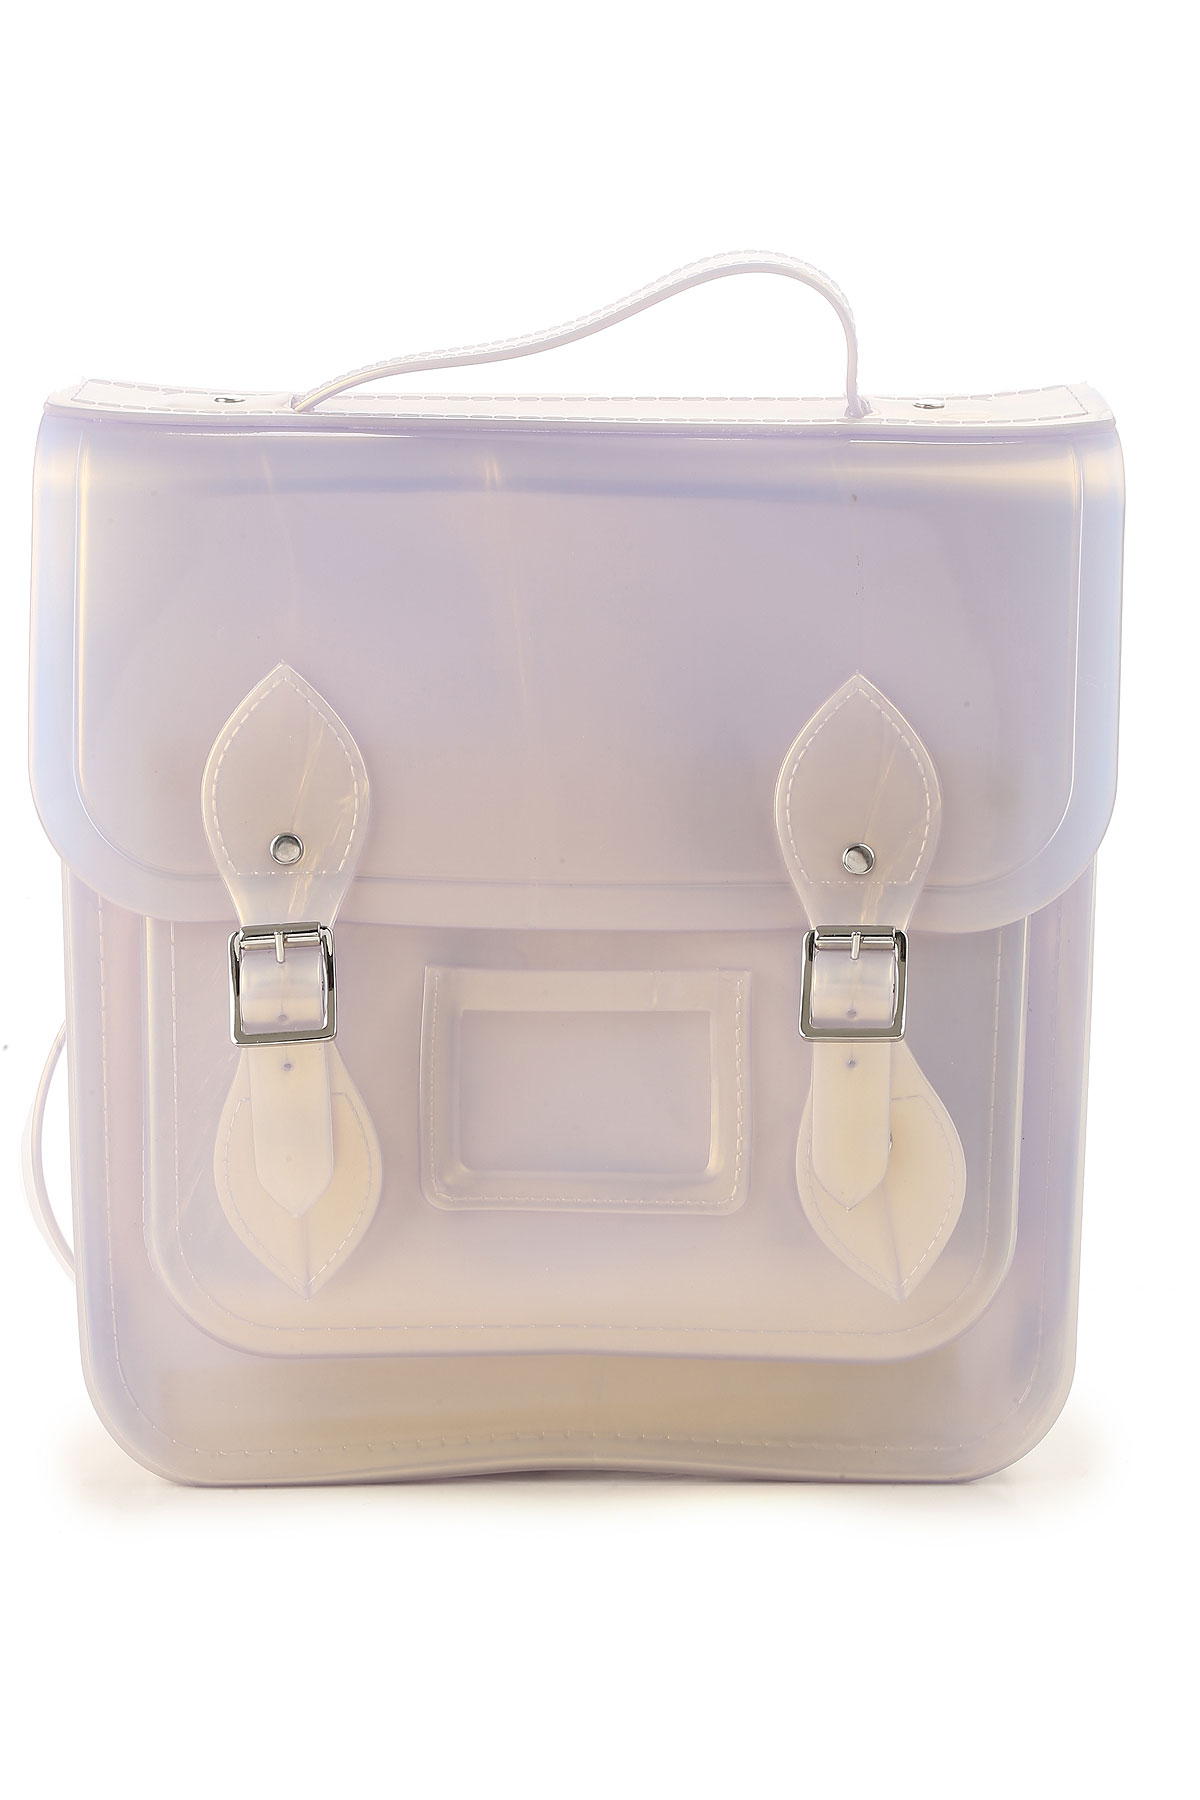 Image of Melissa Backpack for Women, Melissa + The Cambridge Satchel Company, Grey Pearl, PVC, 2017